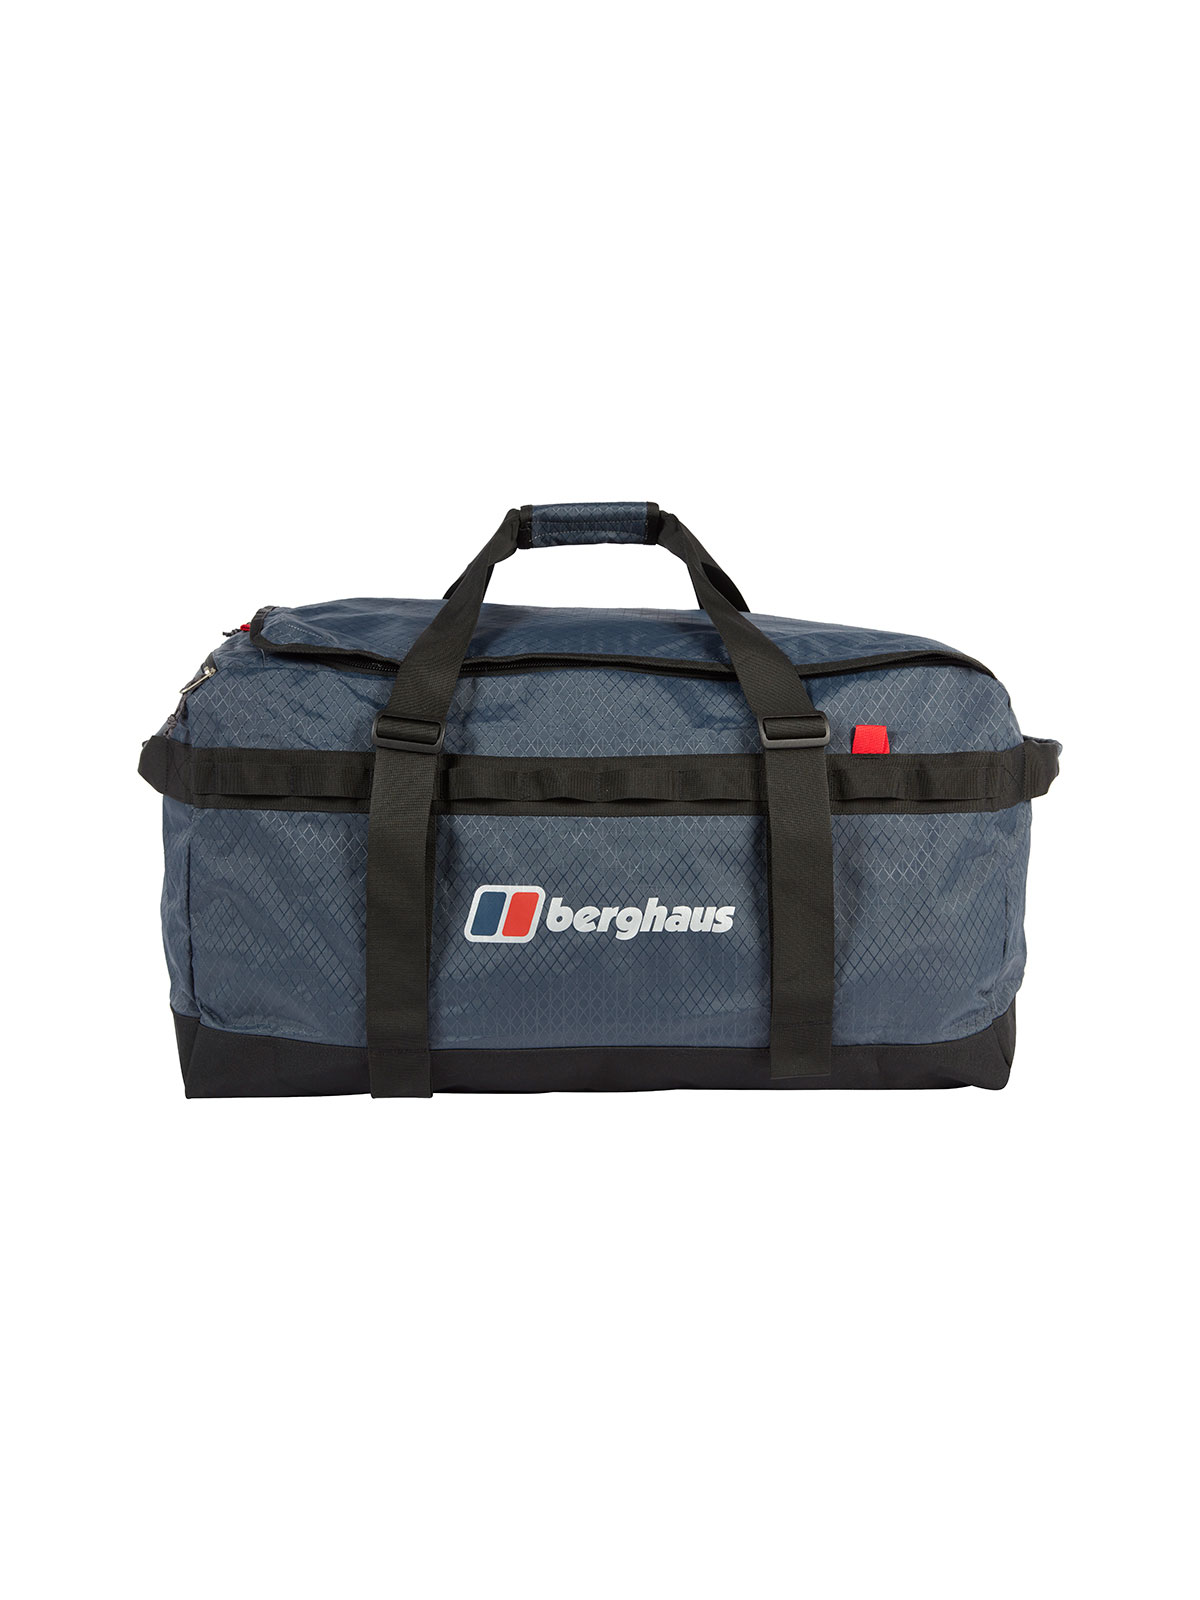 Berghaus Grey/Black Expedition Mule 100 Holdall